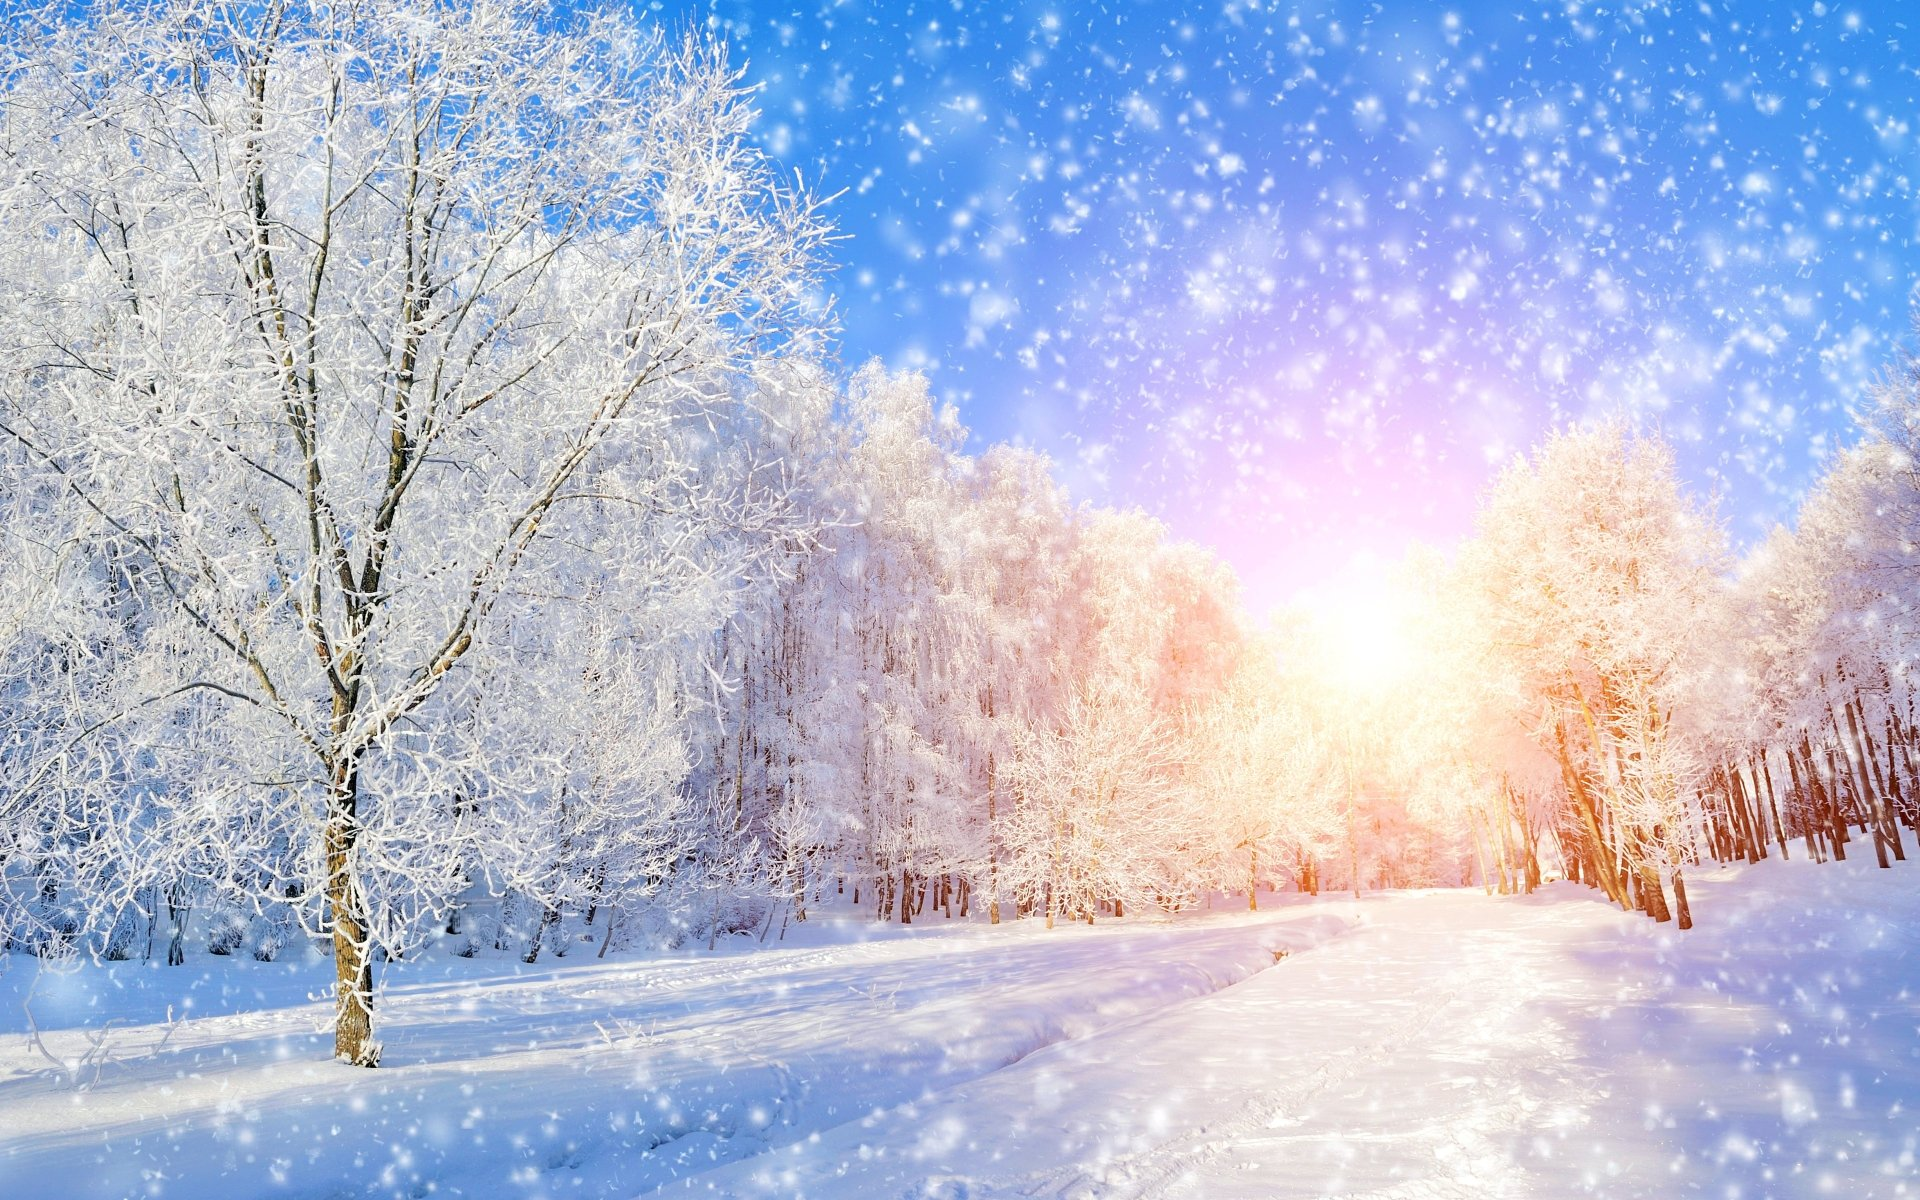 Earth - Winter  Blue Pastel Nature Scenic Sky Snow White Wallpaper